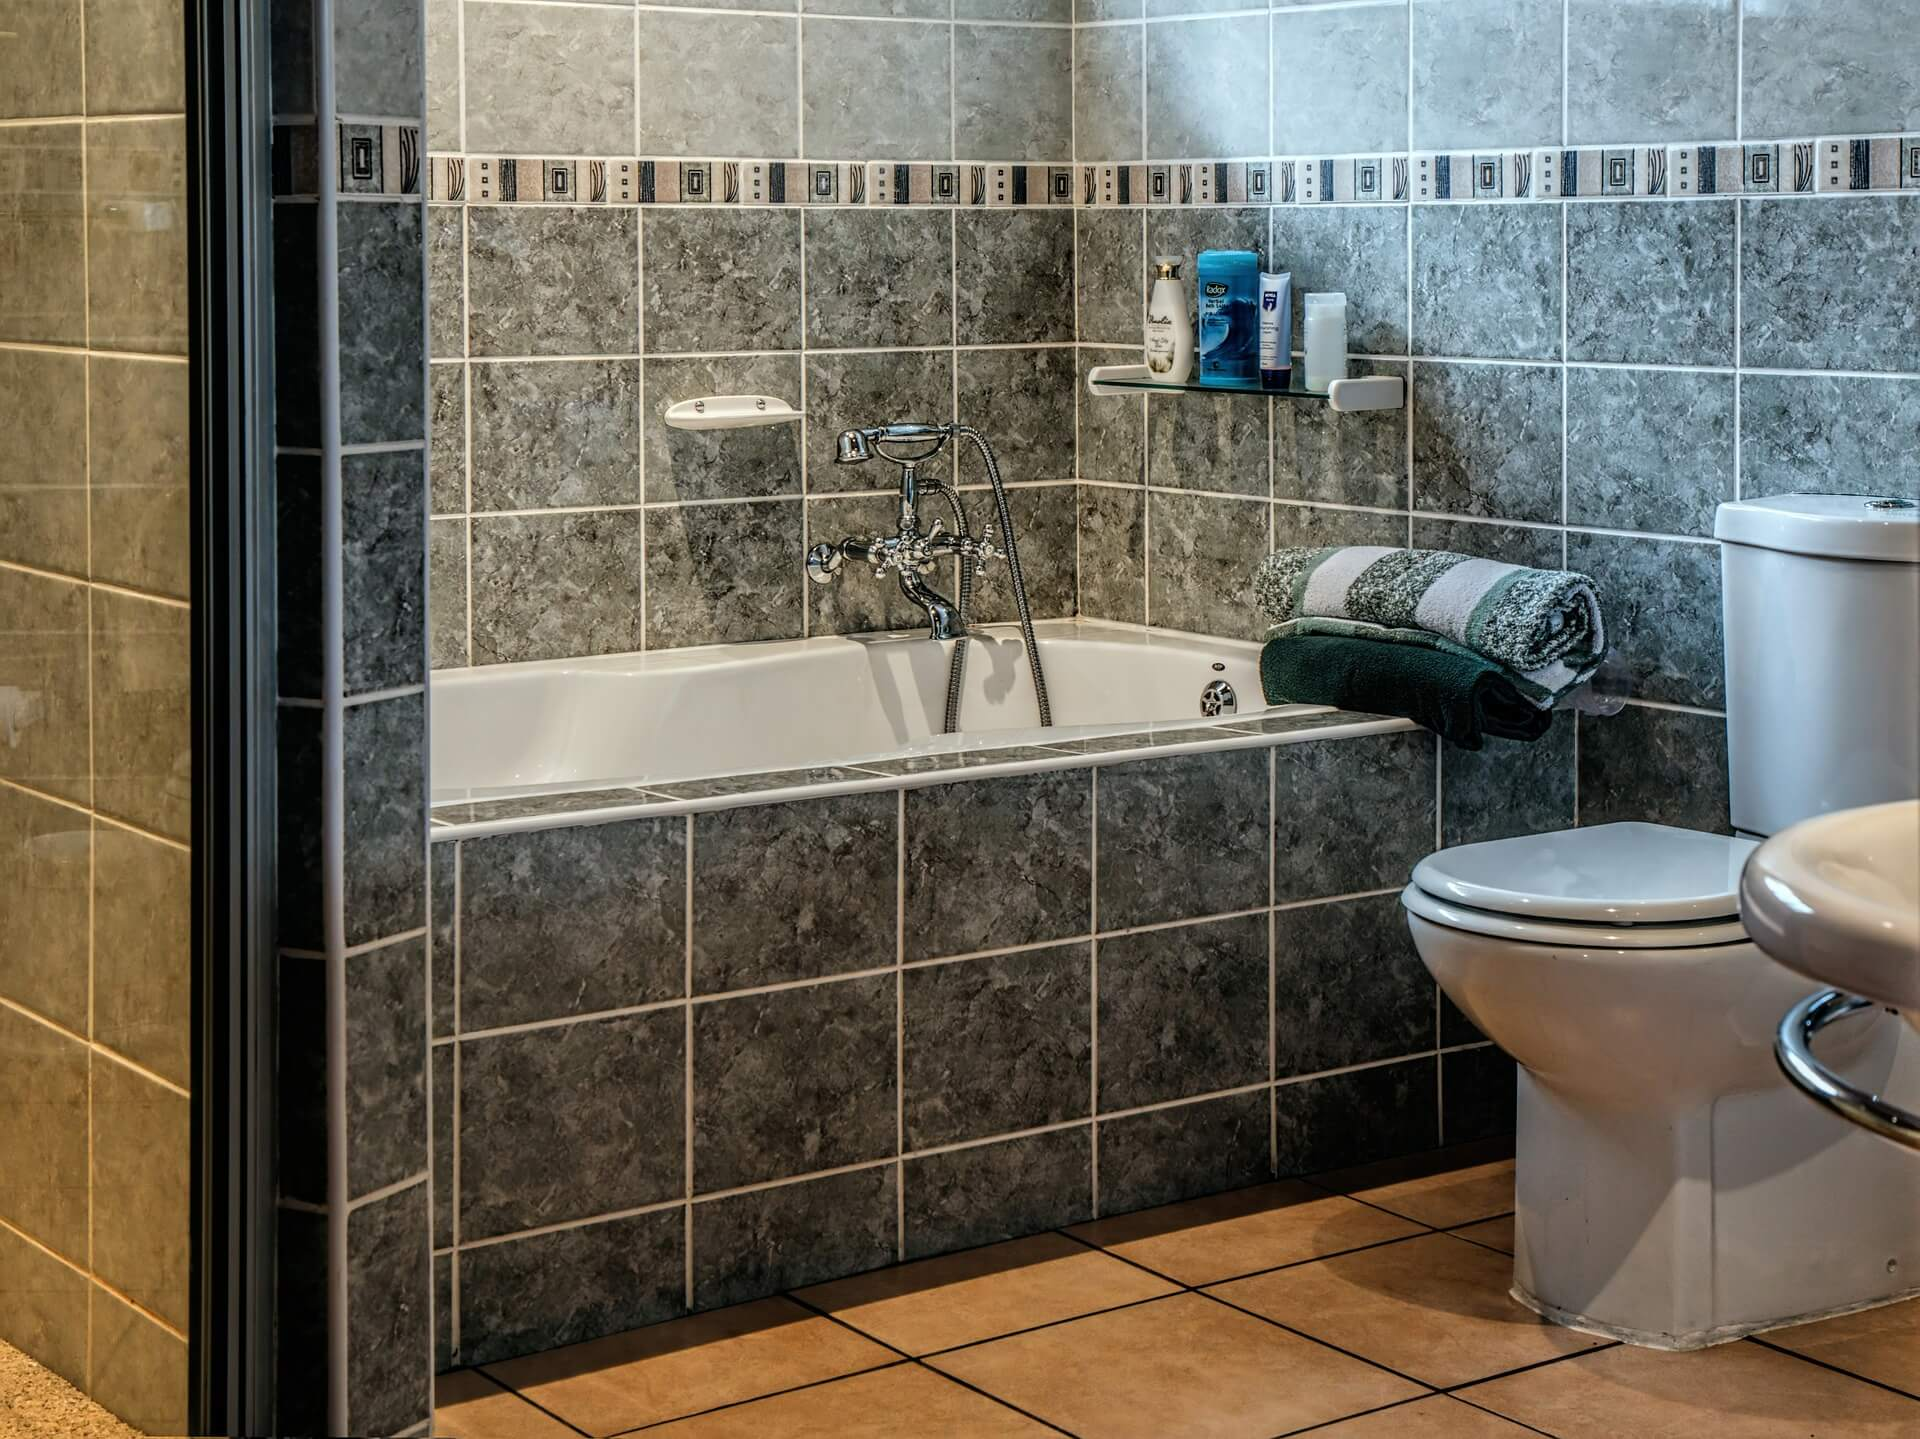 Home Renovation Projects To Improve Your Lifestyle